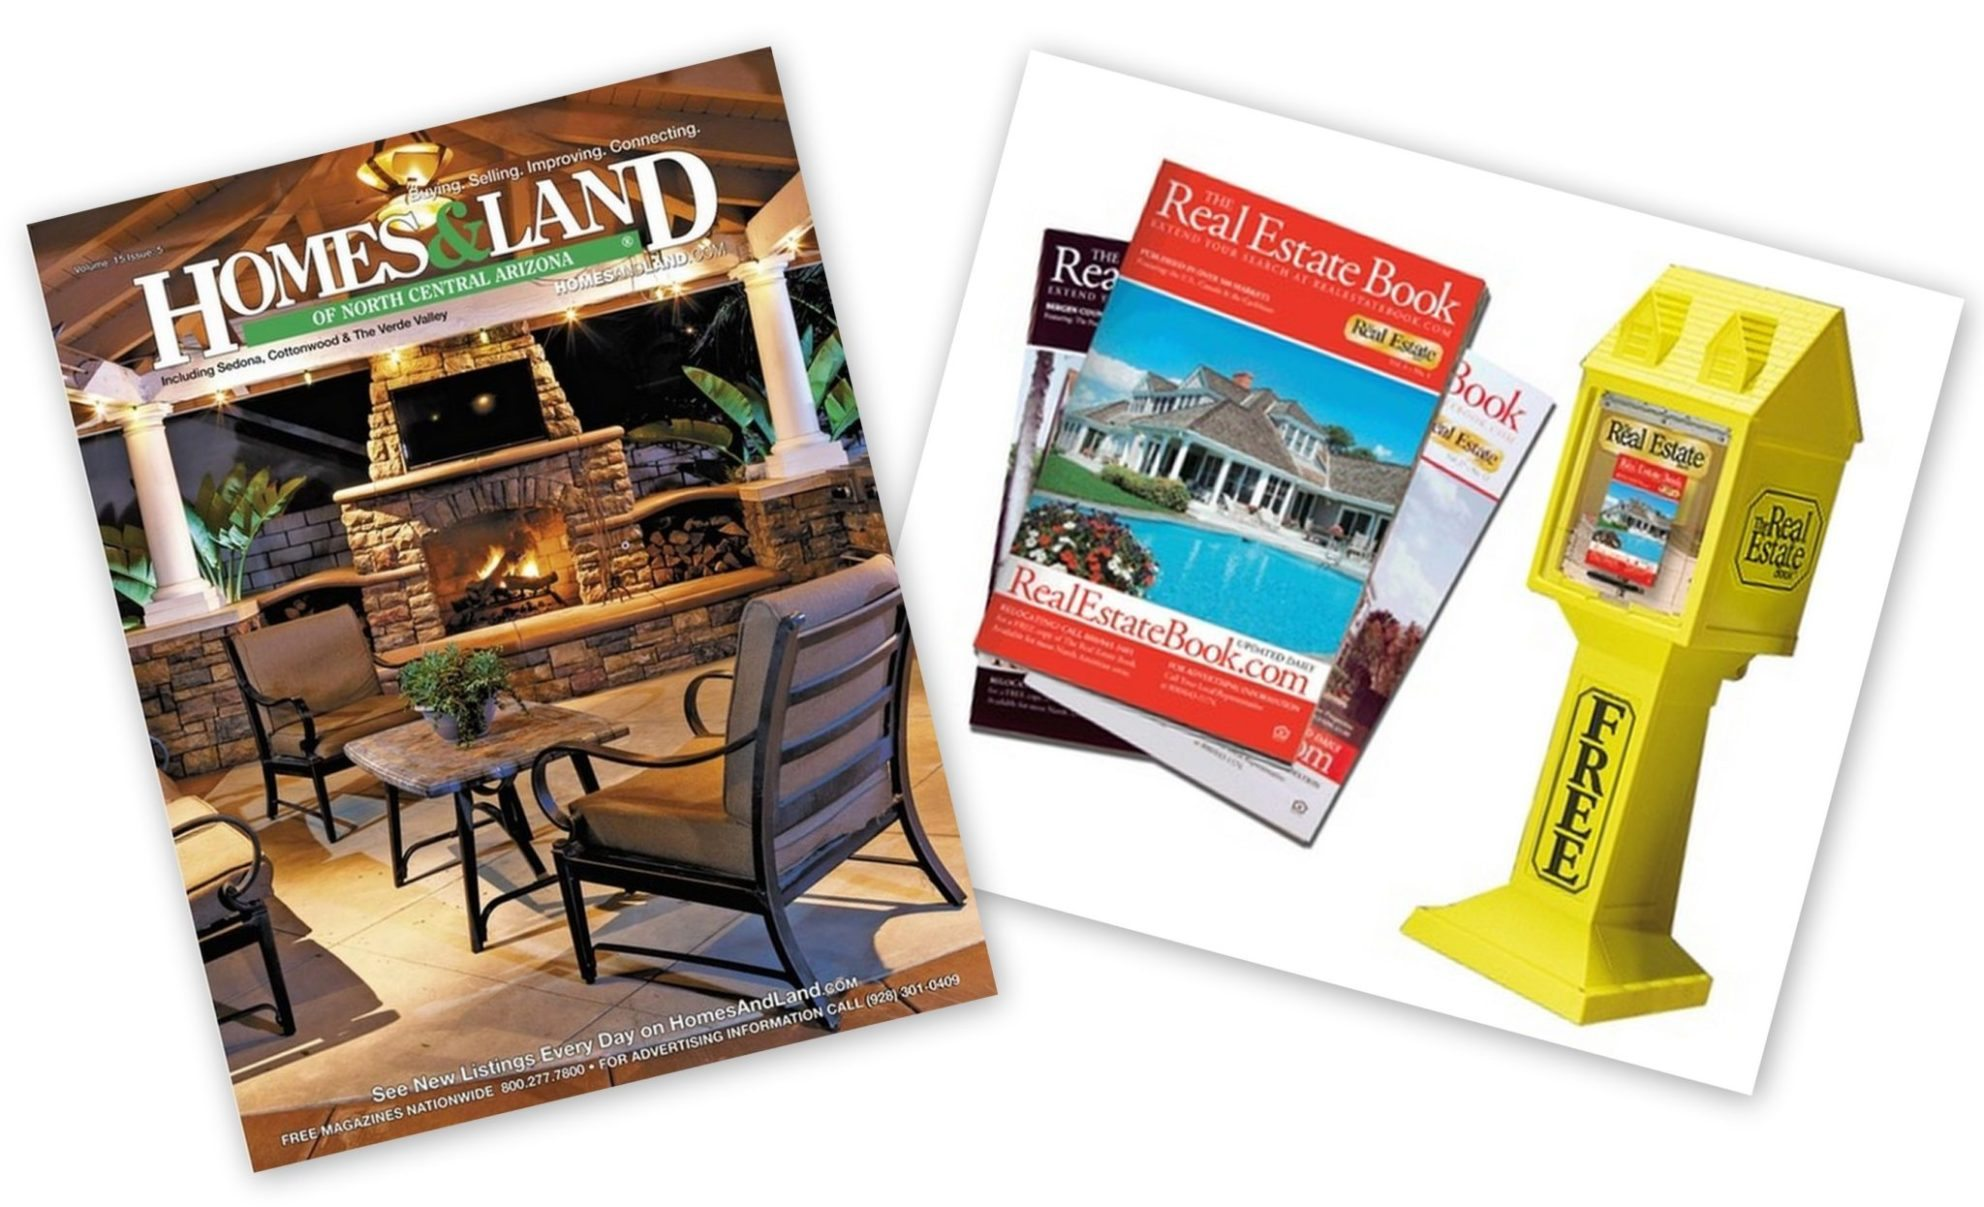 Print ad standbys The Real Estate Book, Homes & Land now under same owner